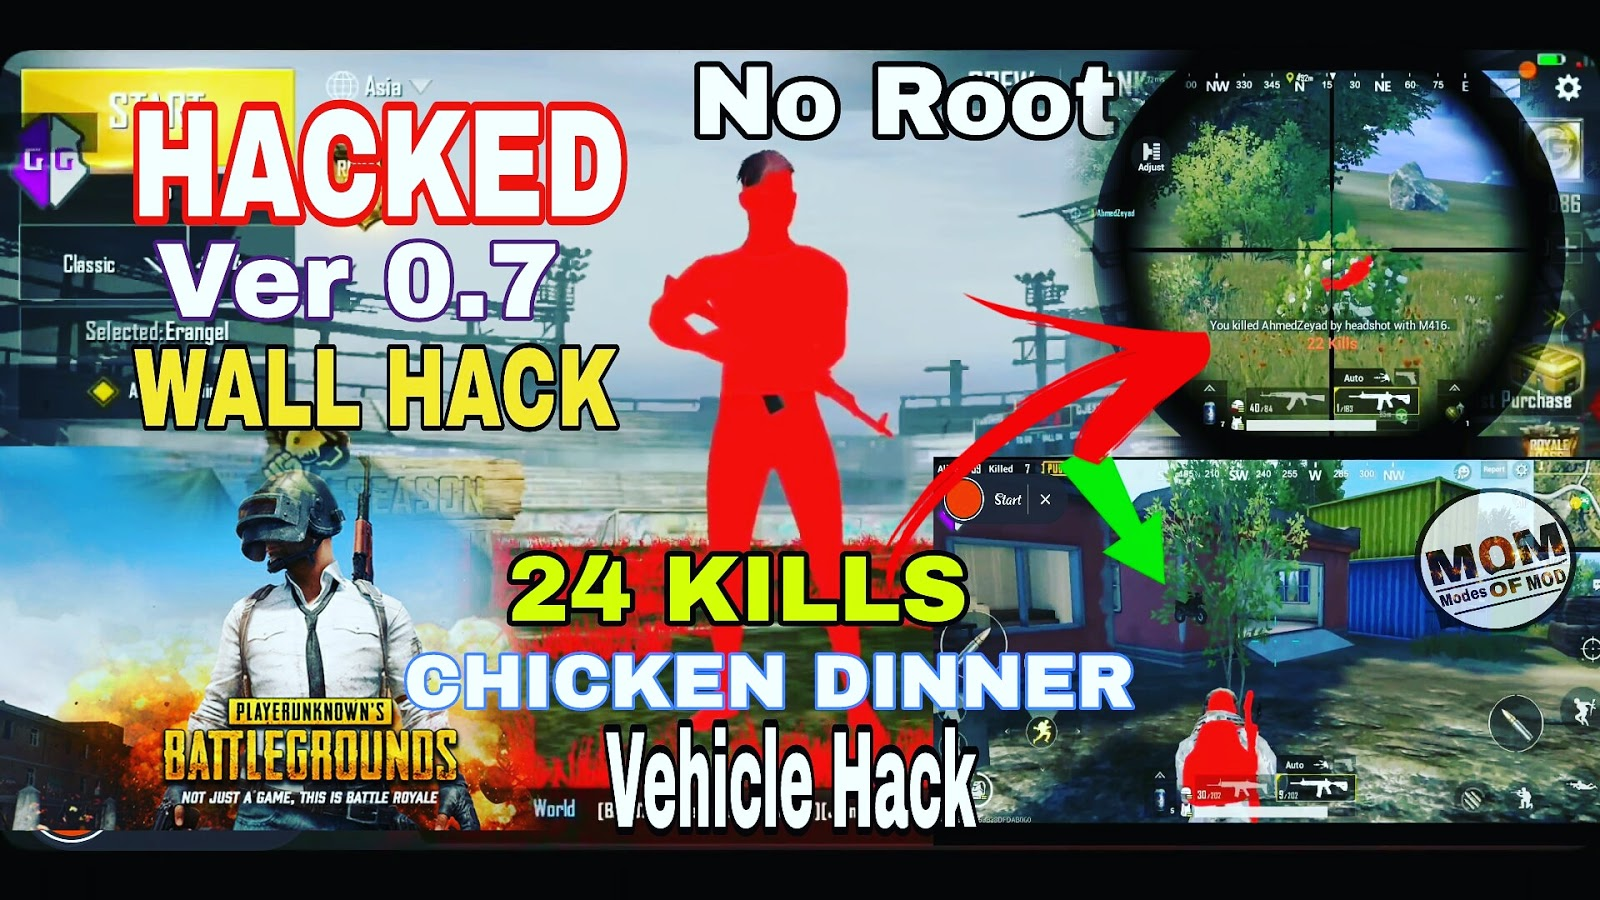 Hack Pubg Mobile Pc Hack - Pubg Mobile Hack Season 6